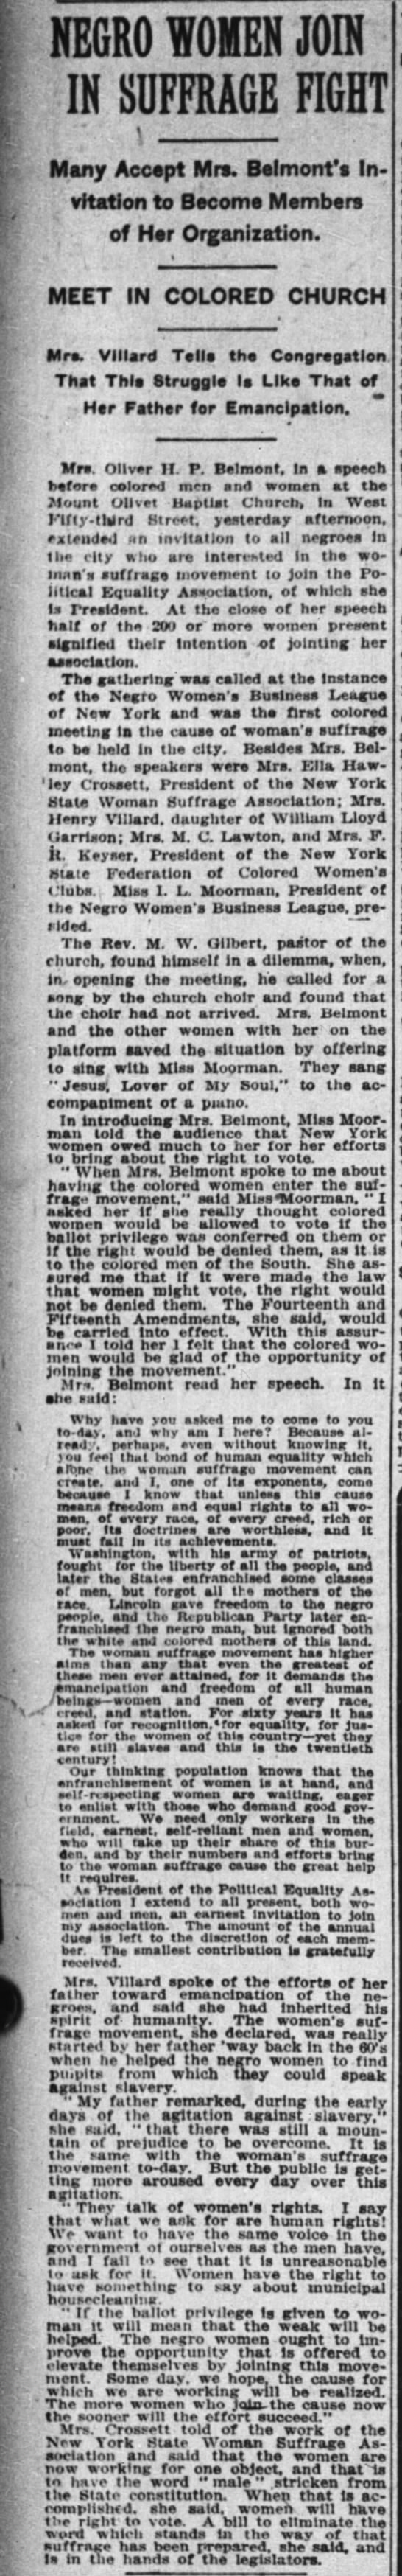 Negro Women Join in Suffrage Fight. The New York Times (New York, New York) 7 February 1910, p 4 -